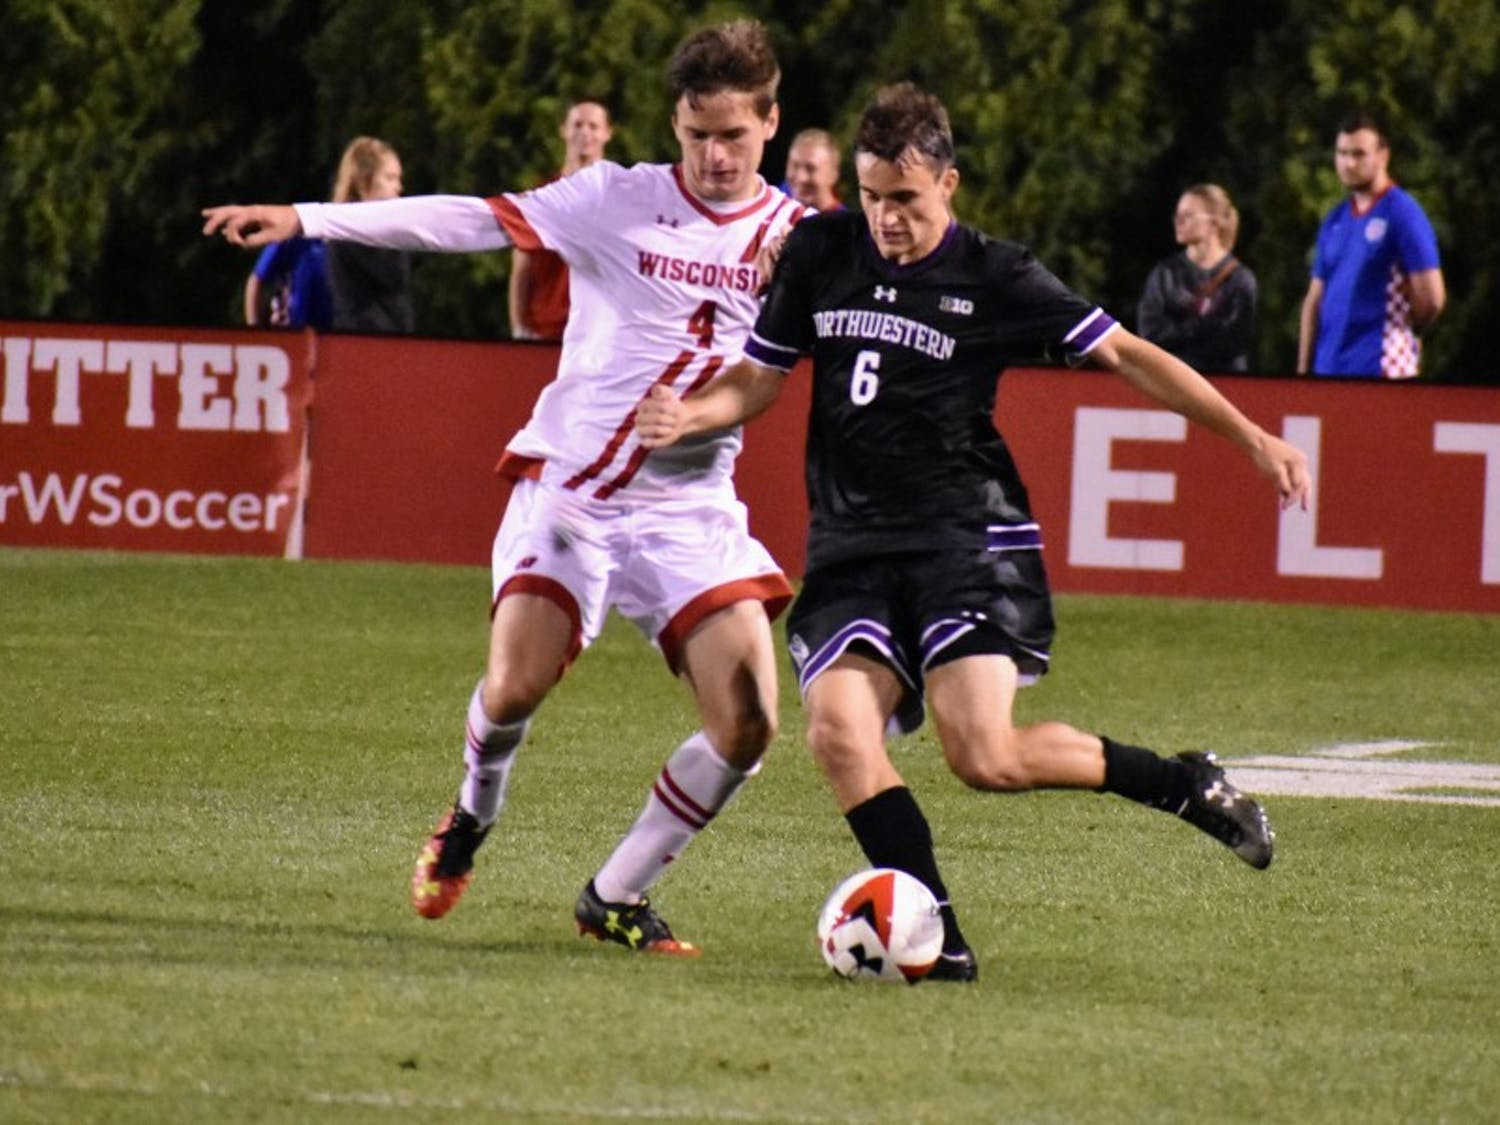 Senior midfielder and defender Enda O'Neill helped UW blank Loyola Chicago 2-0.